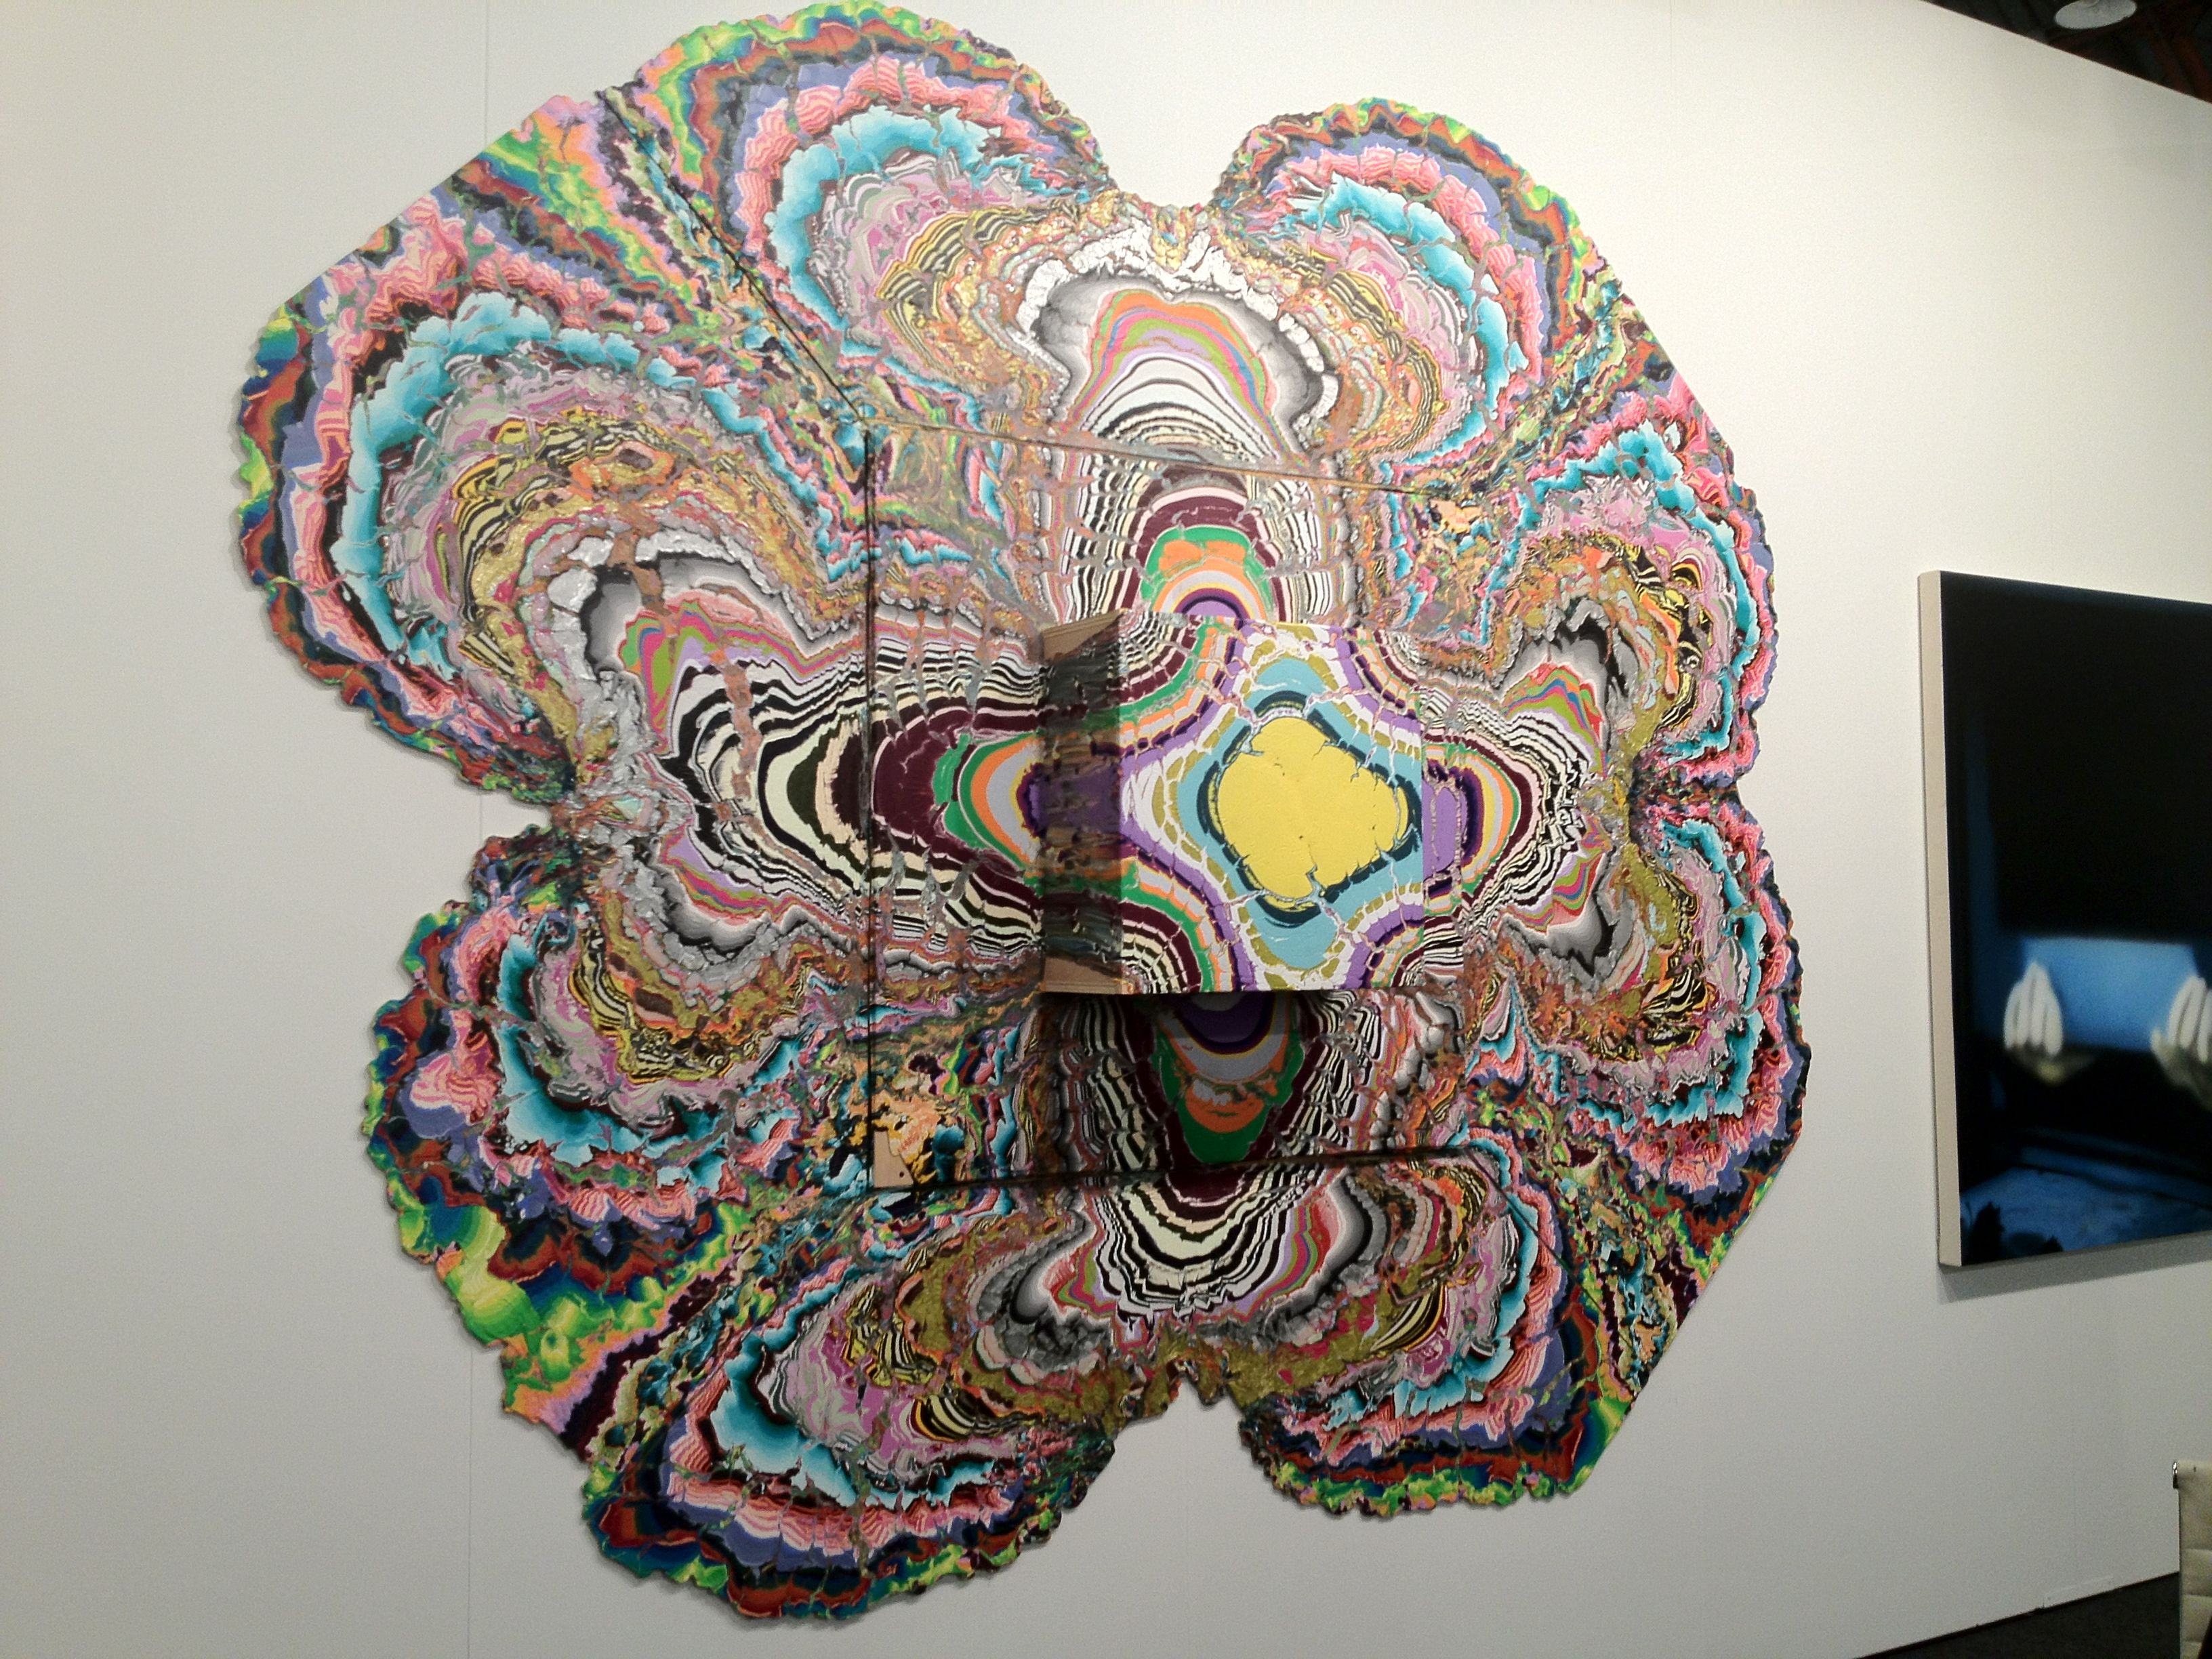 Art Los Angeles Contemporary. Holton Rower alla The Hole Gallery.